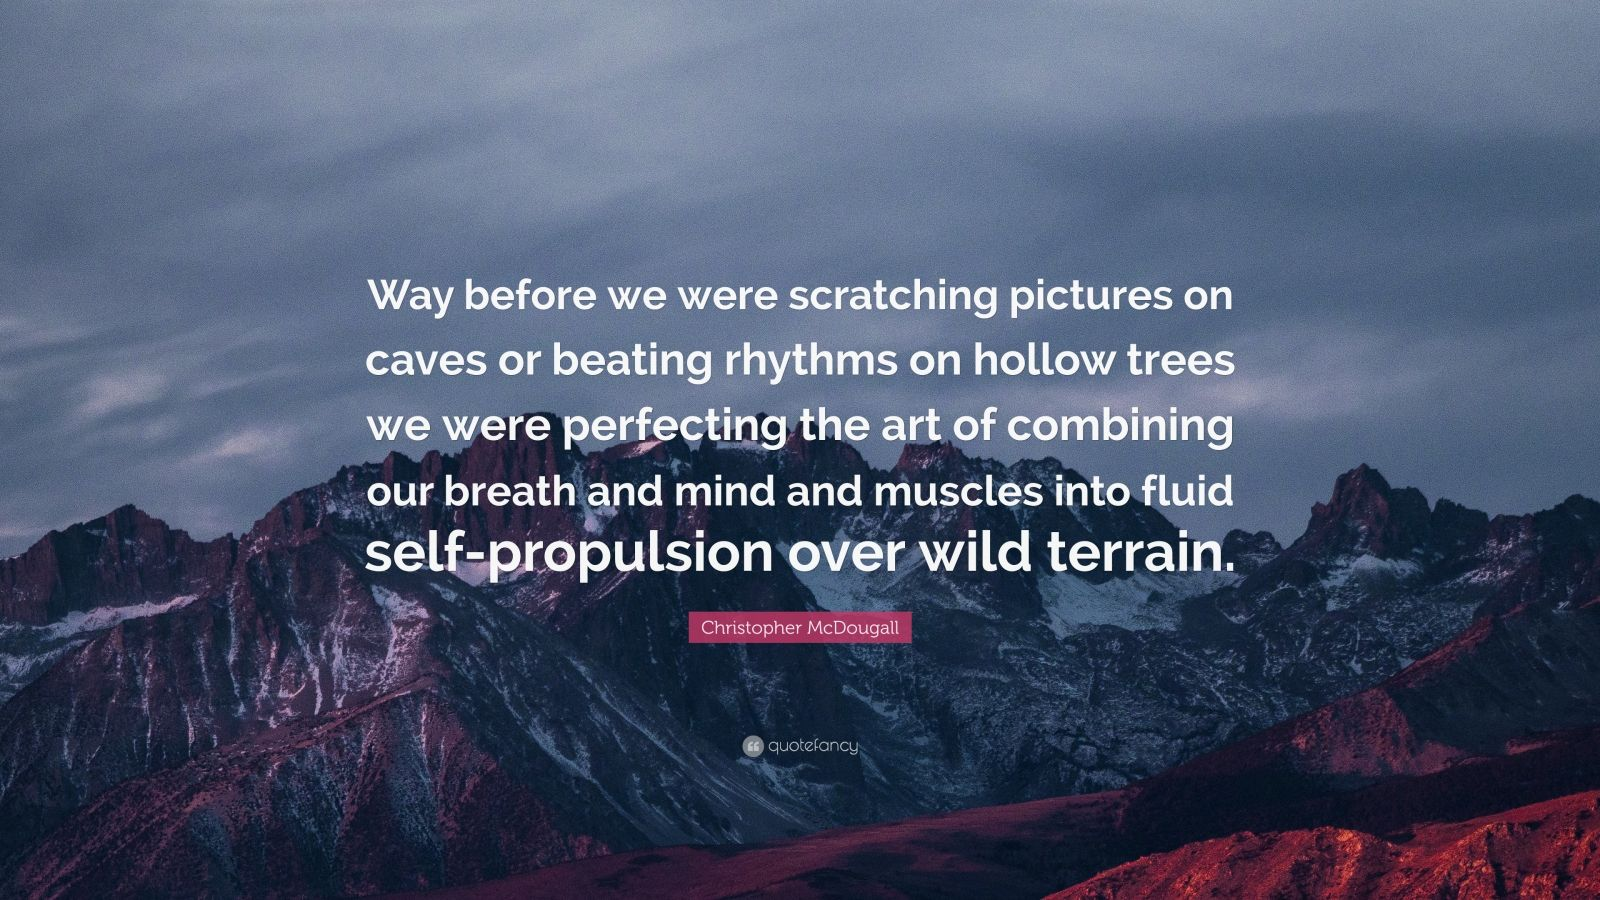 """Christopher McDougall Quote: """"Way before we were scratching pictures on caves or beating rhythms on hollow trees we were perfecting the art of combining our breath and mind and muscles into fluid self-propulsion over wild terrain."""""""